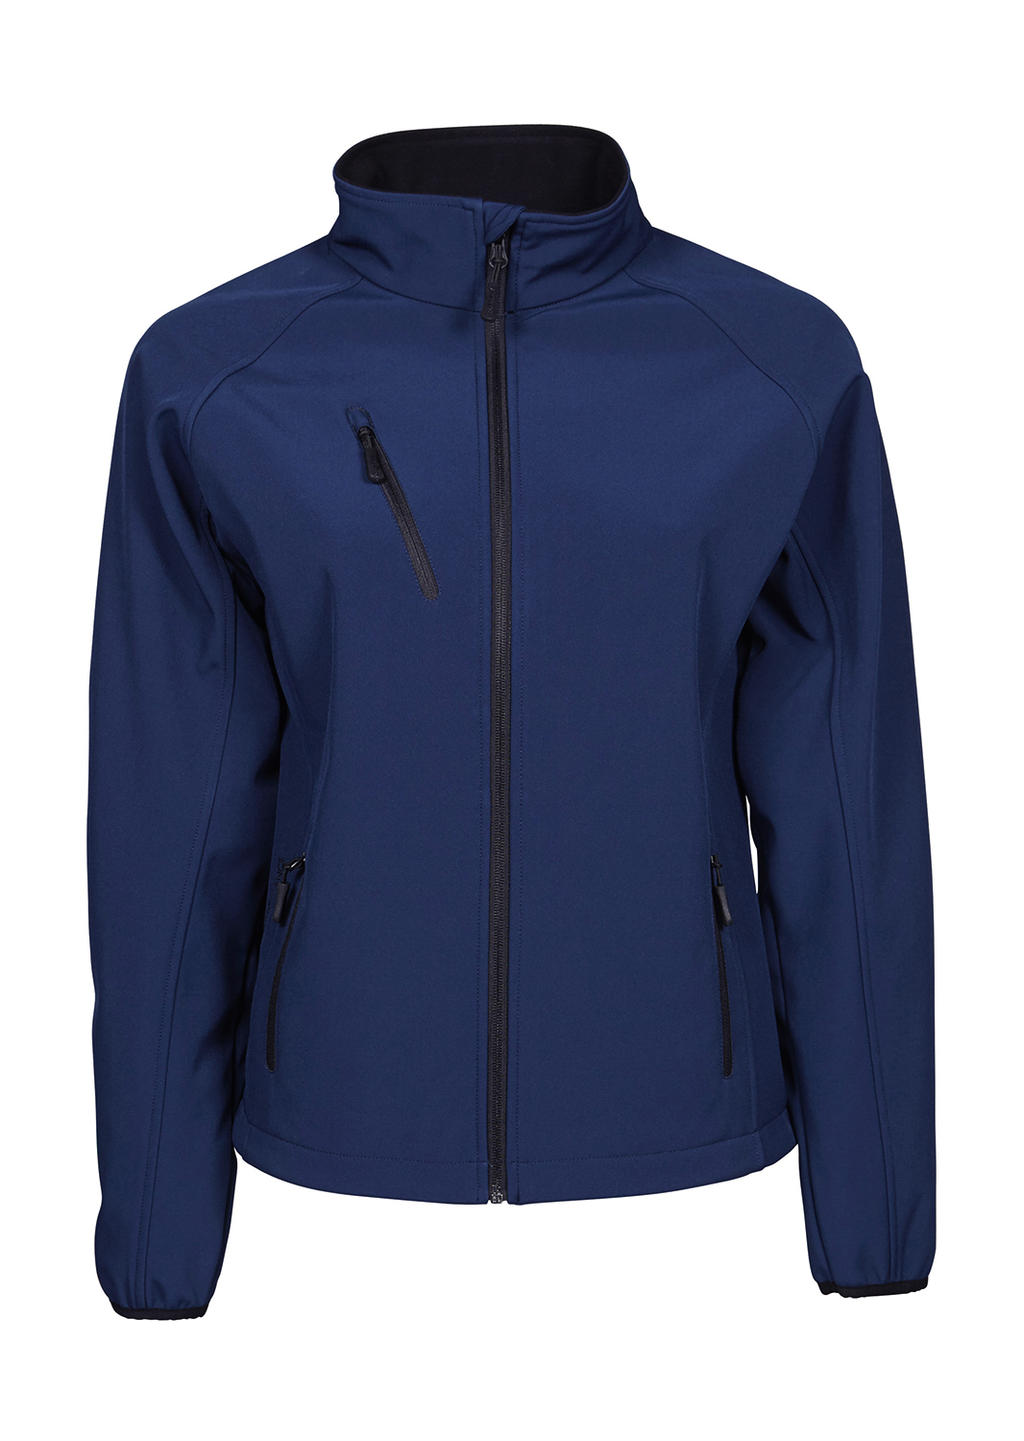 Tee Jays Ladies Performance Softshell Jacket